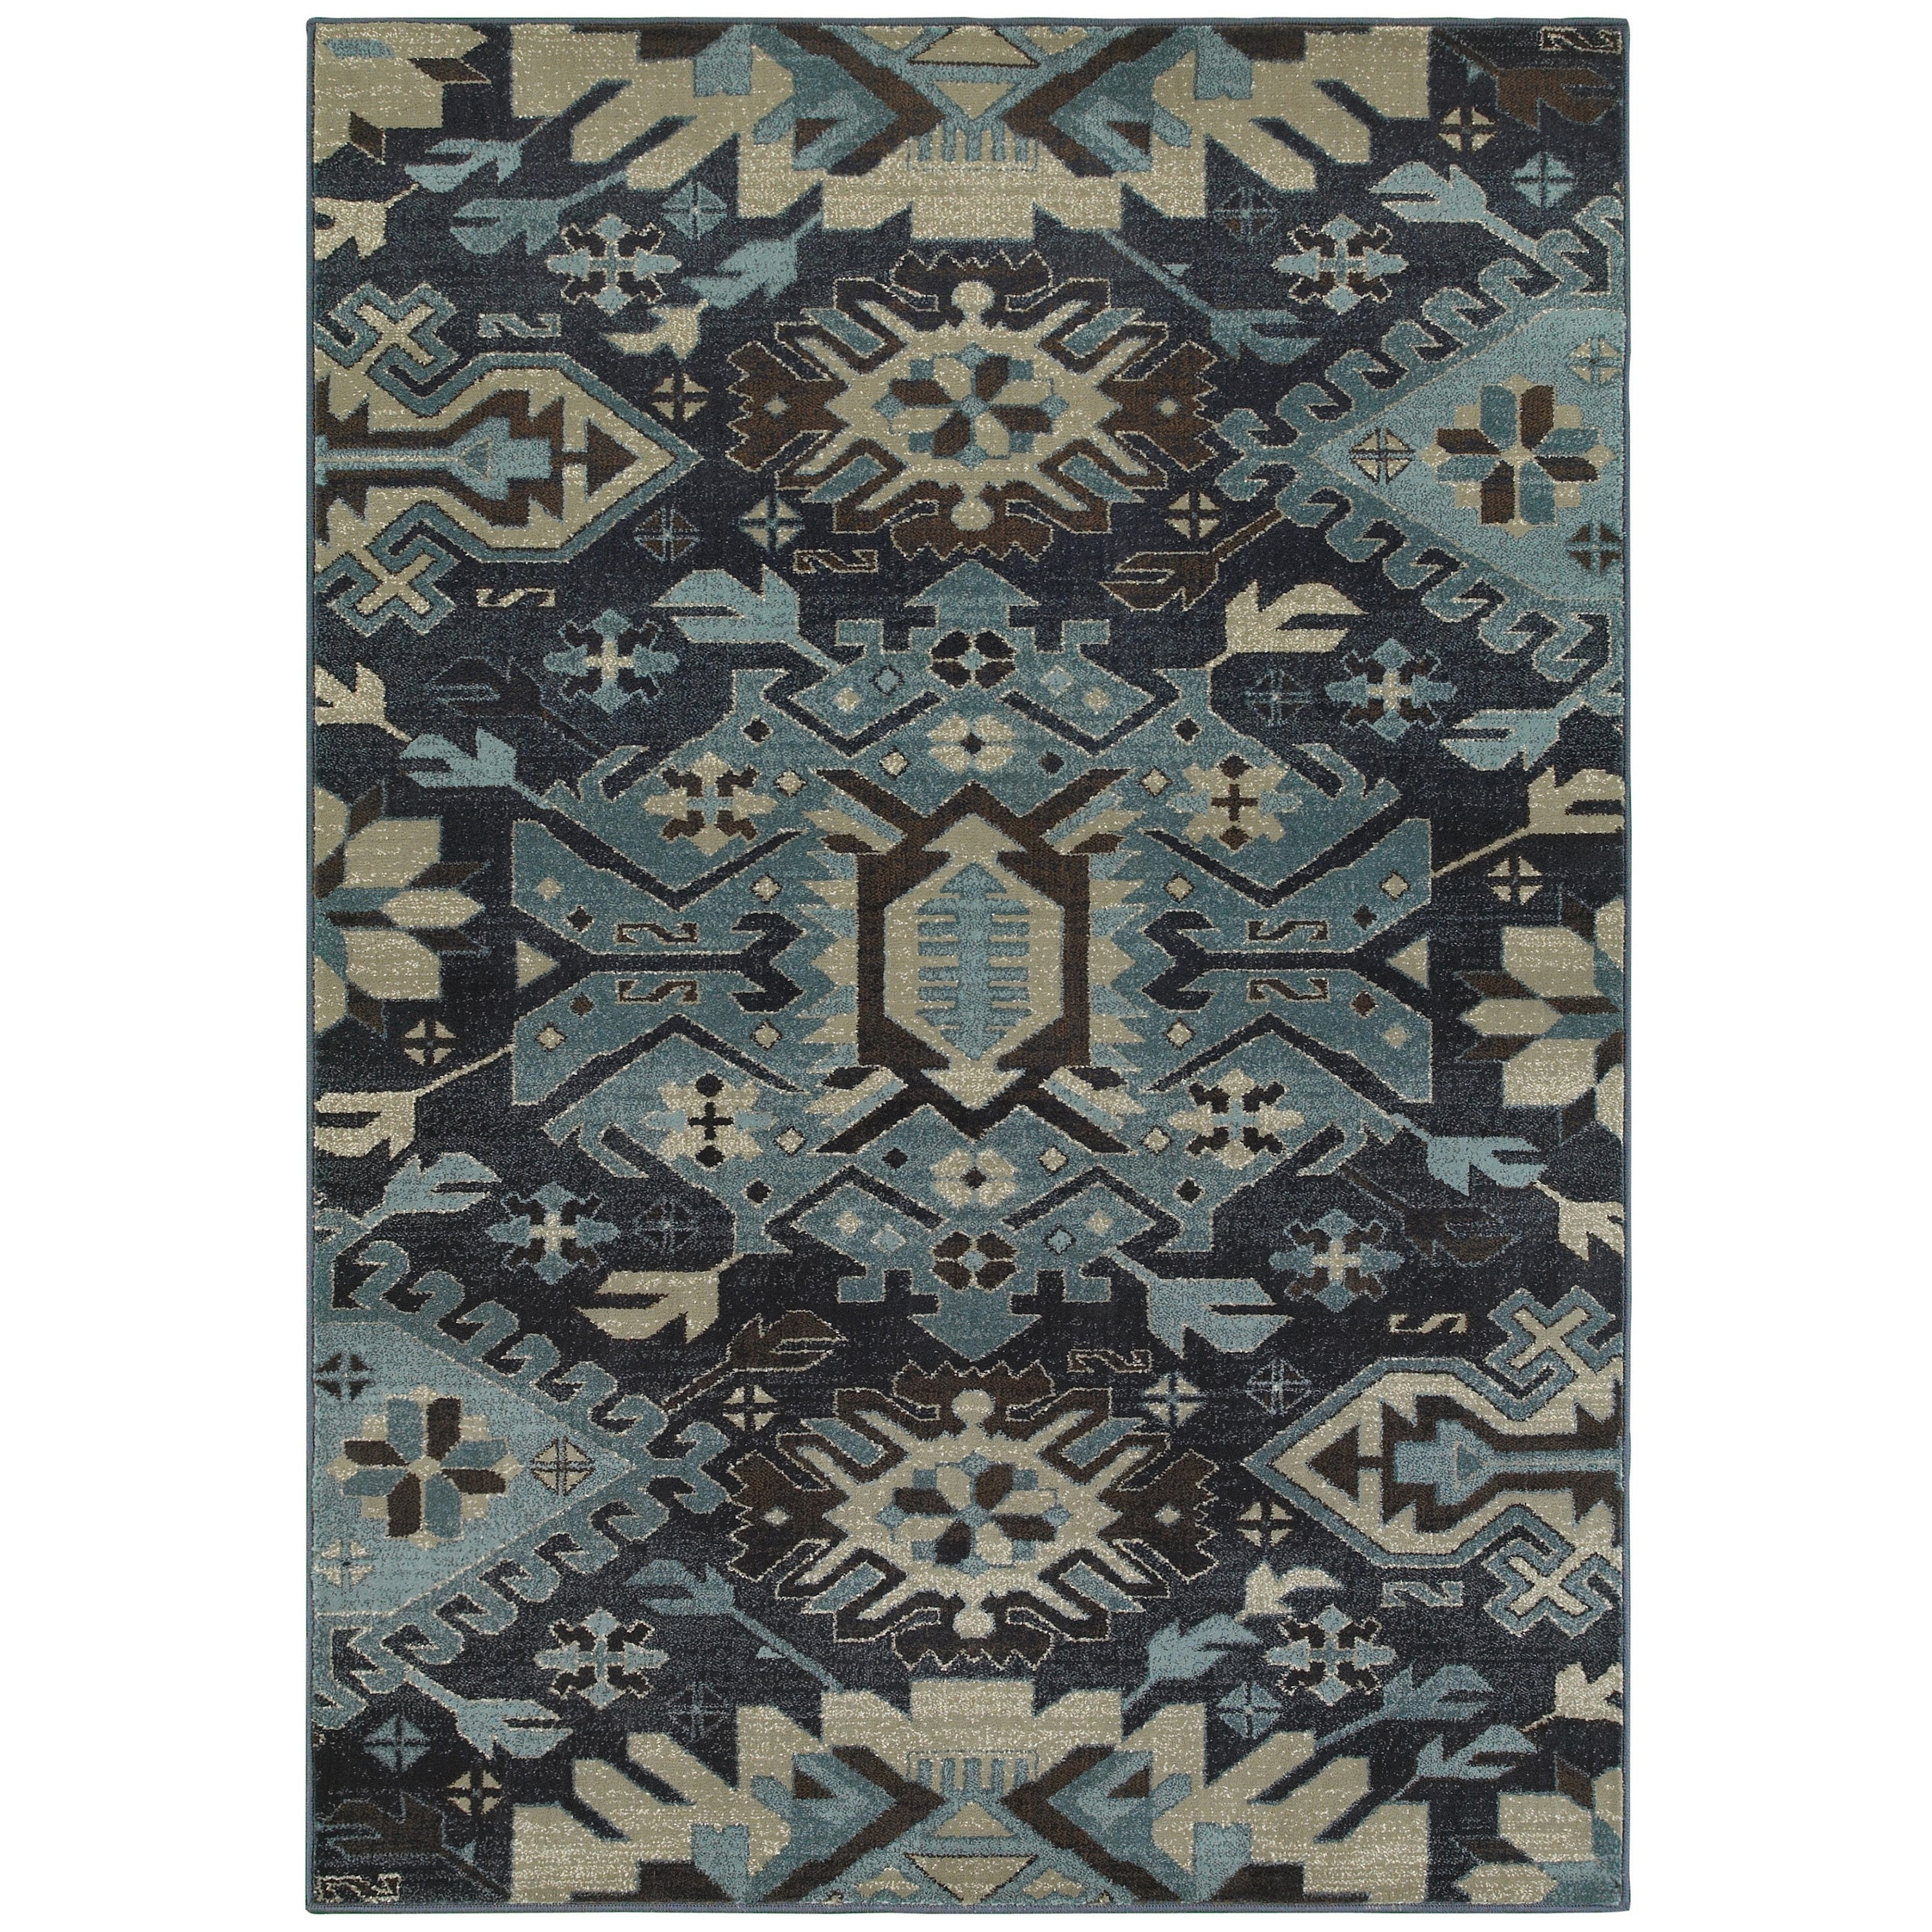 Shop Style Haven Tribal Blues Navy Blue Area Rug 1 10 X 3 1 10 X 3 On Sale Free Shipping On Orders Over 45 Overstock 14818596